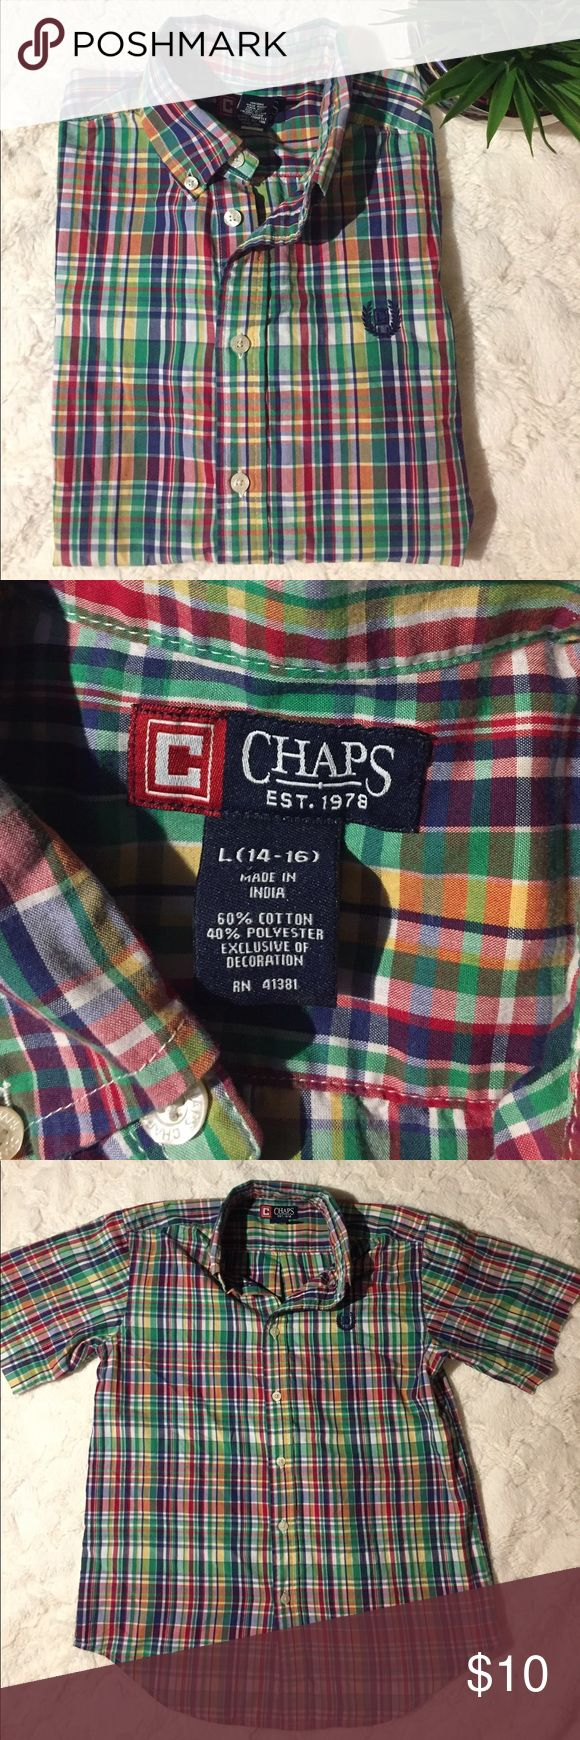 GUC Chaps Boys Short Sleeve Plaid Shirt, L (14-16) Good used condition. No rips tears or stains. Large, 14-16. Multicolor plaid green, yellow, purple, red & white. 60% cotton, 40% polyester. Button down point collar. Chaps Shirts & Tops Button Down Shirts